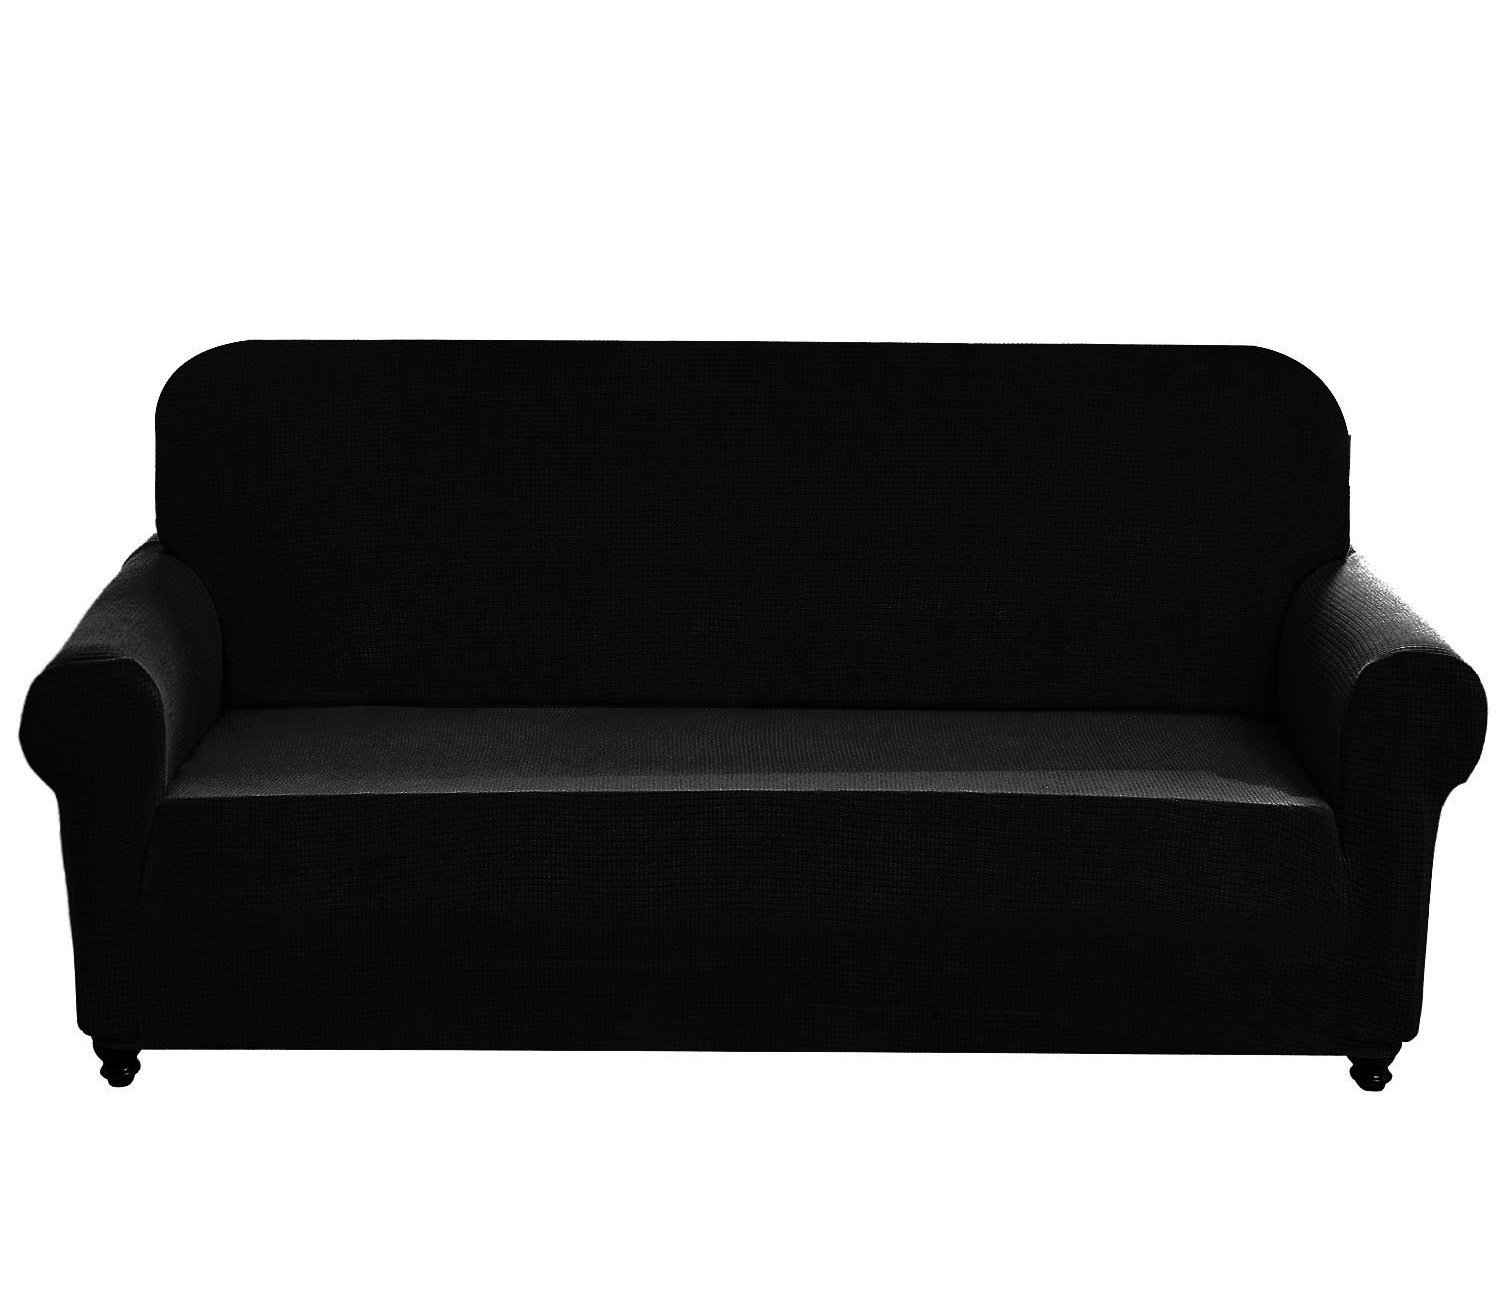 Chelzen Stretch Sofa Covers 1-Piece Polyester Spandex Fabric Living Room Couch Slipcovers (Sofa, Black)